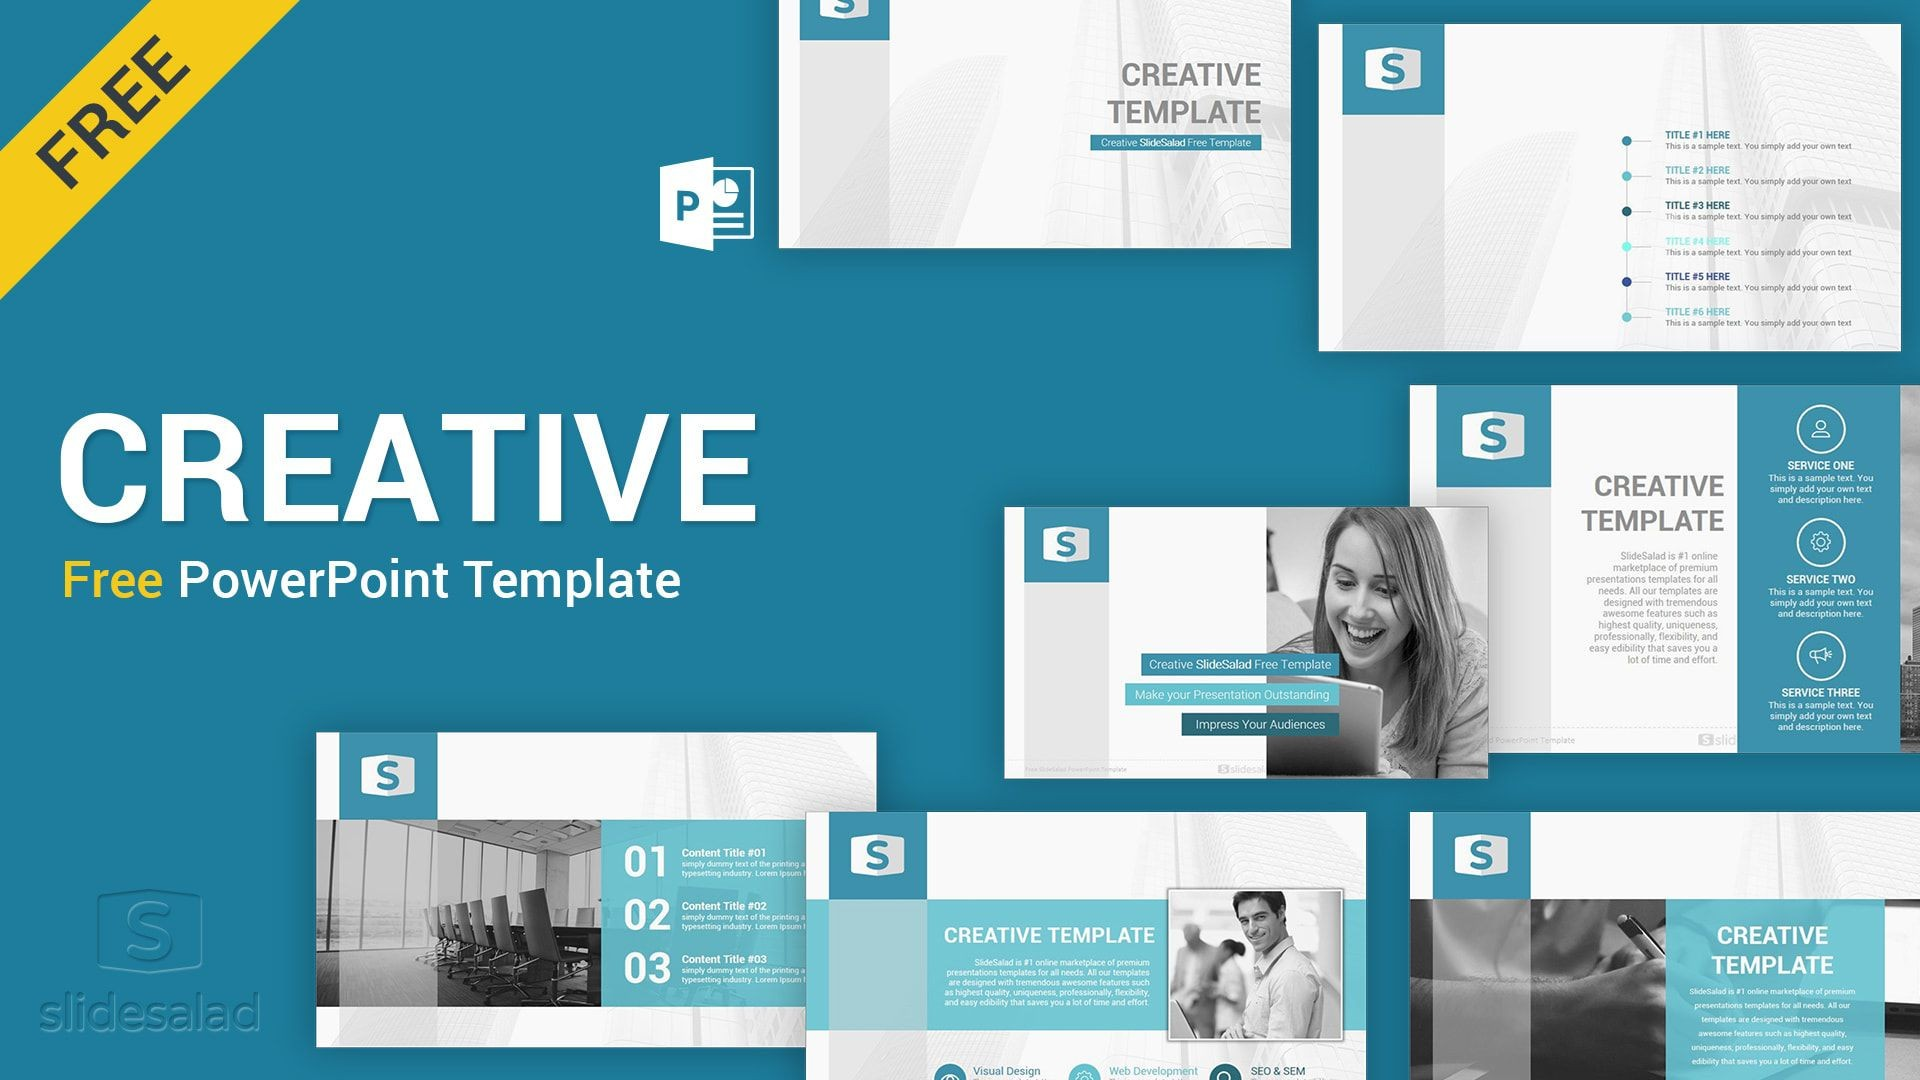 005 Awful Power Point Presentation Template Free Idea  Powerpoint Layout Download 2019 Modern Busines1920